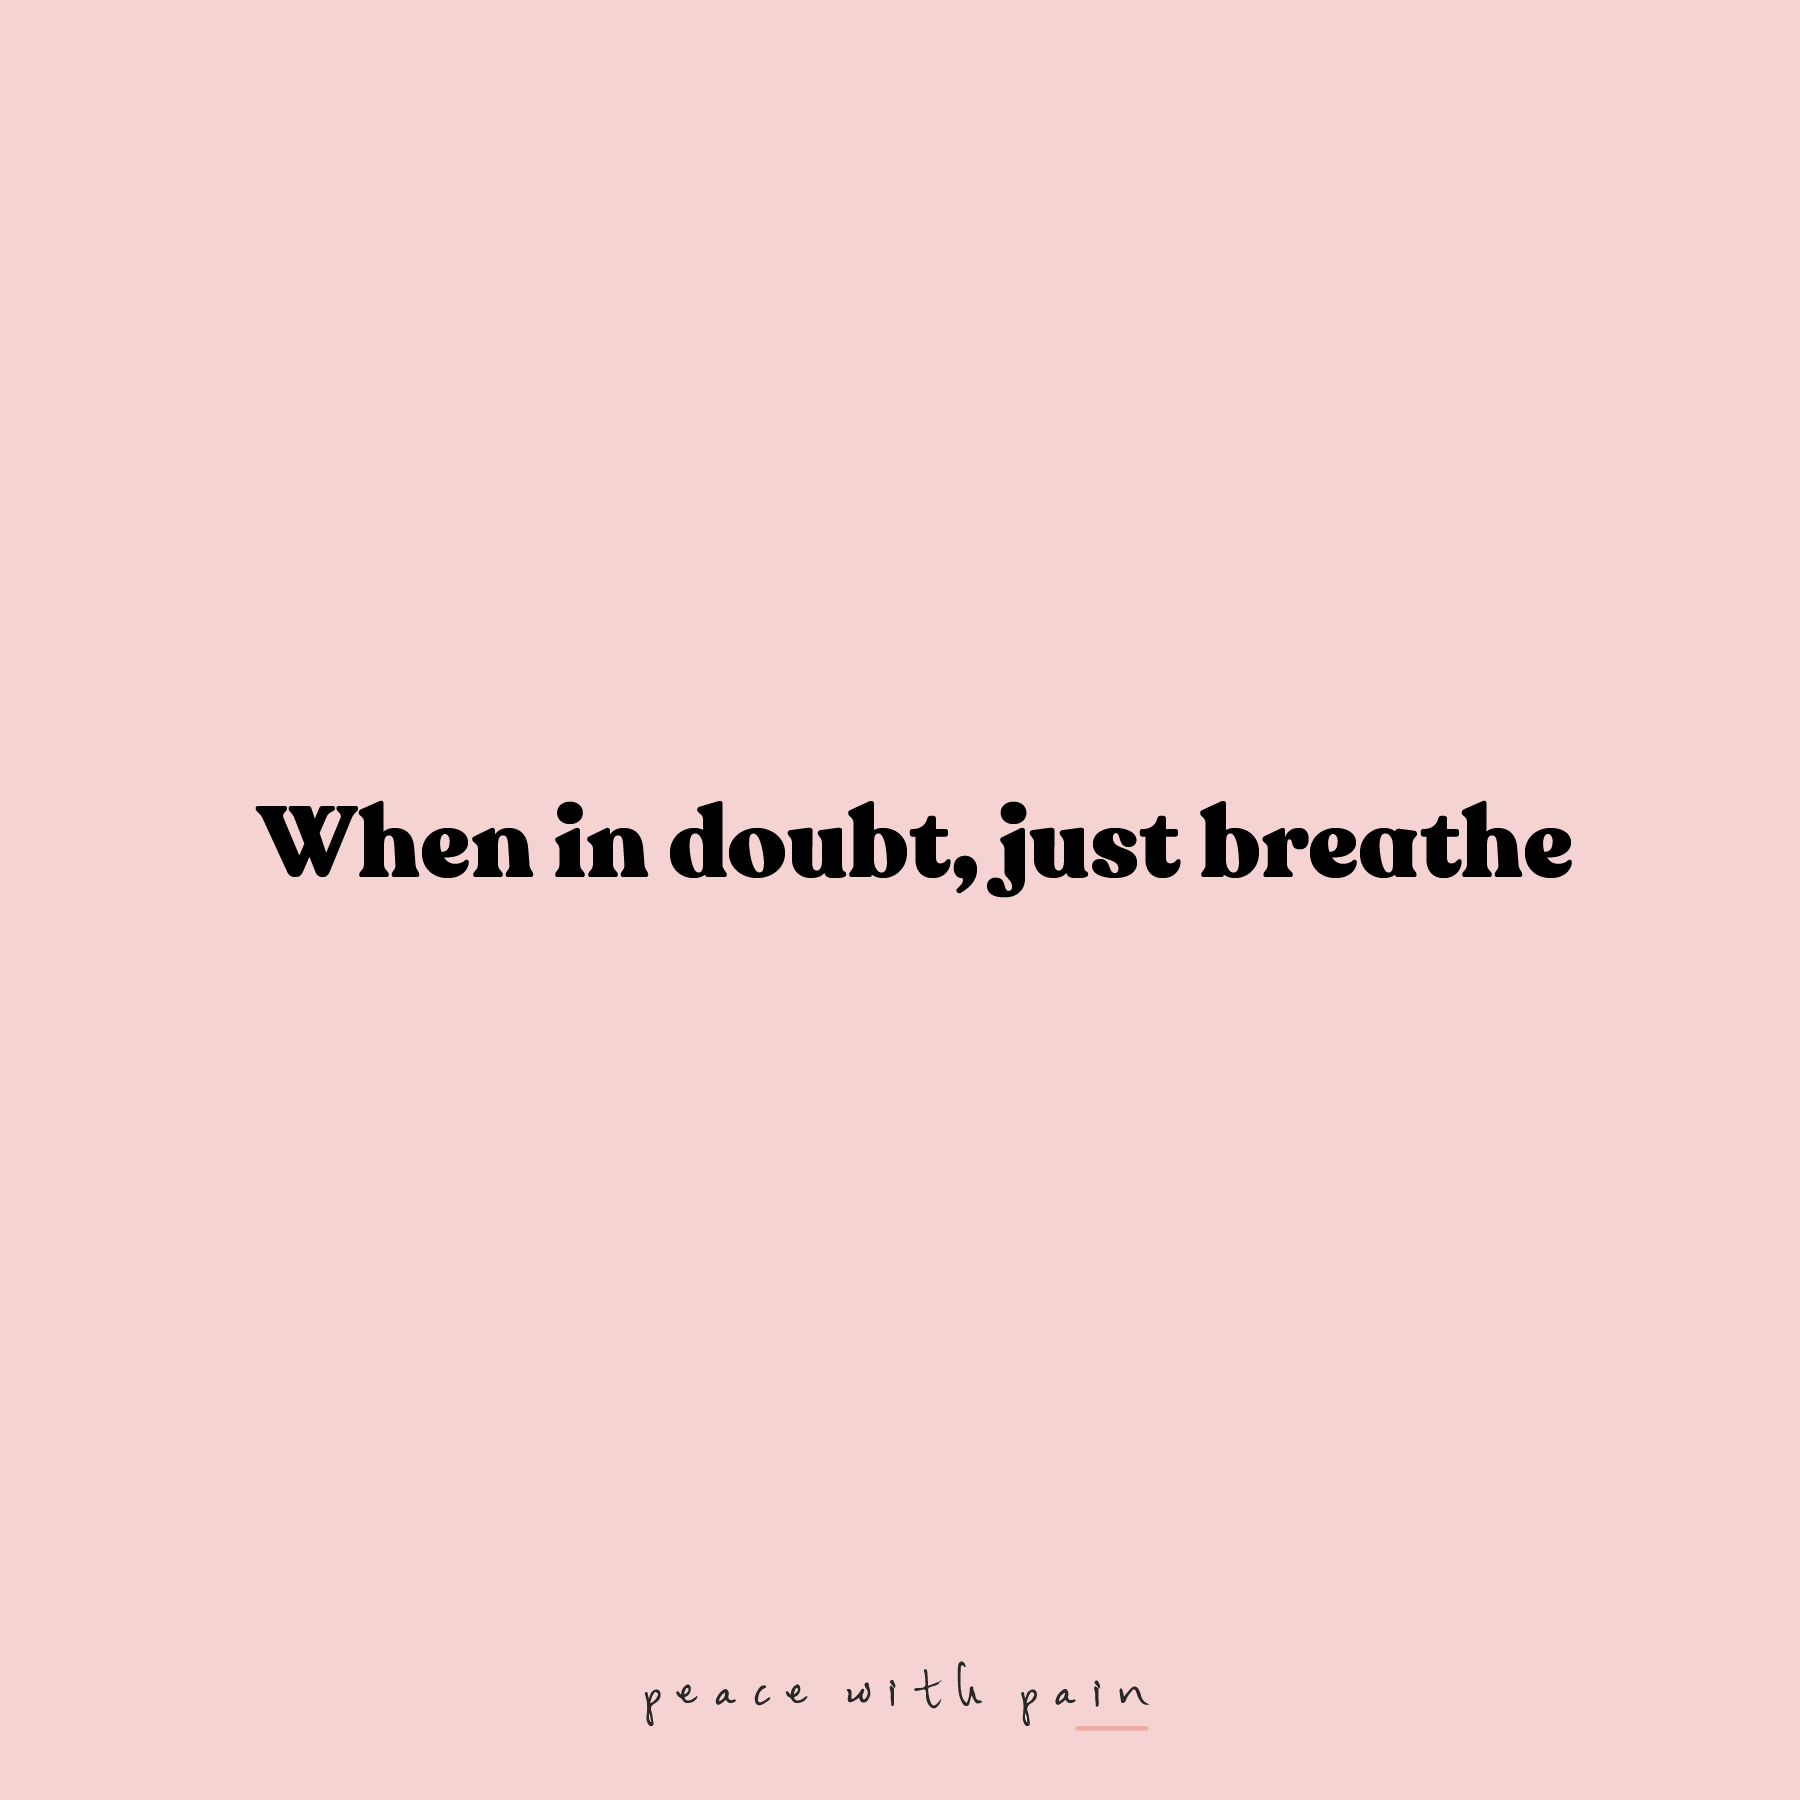 justbreathe.png